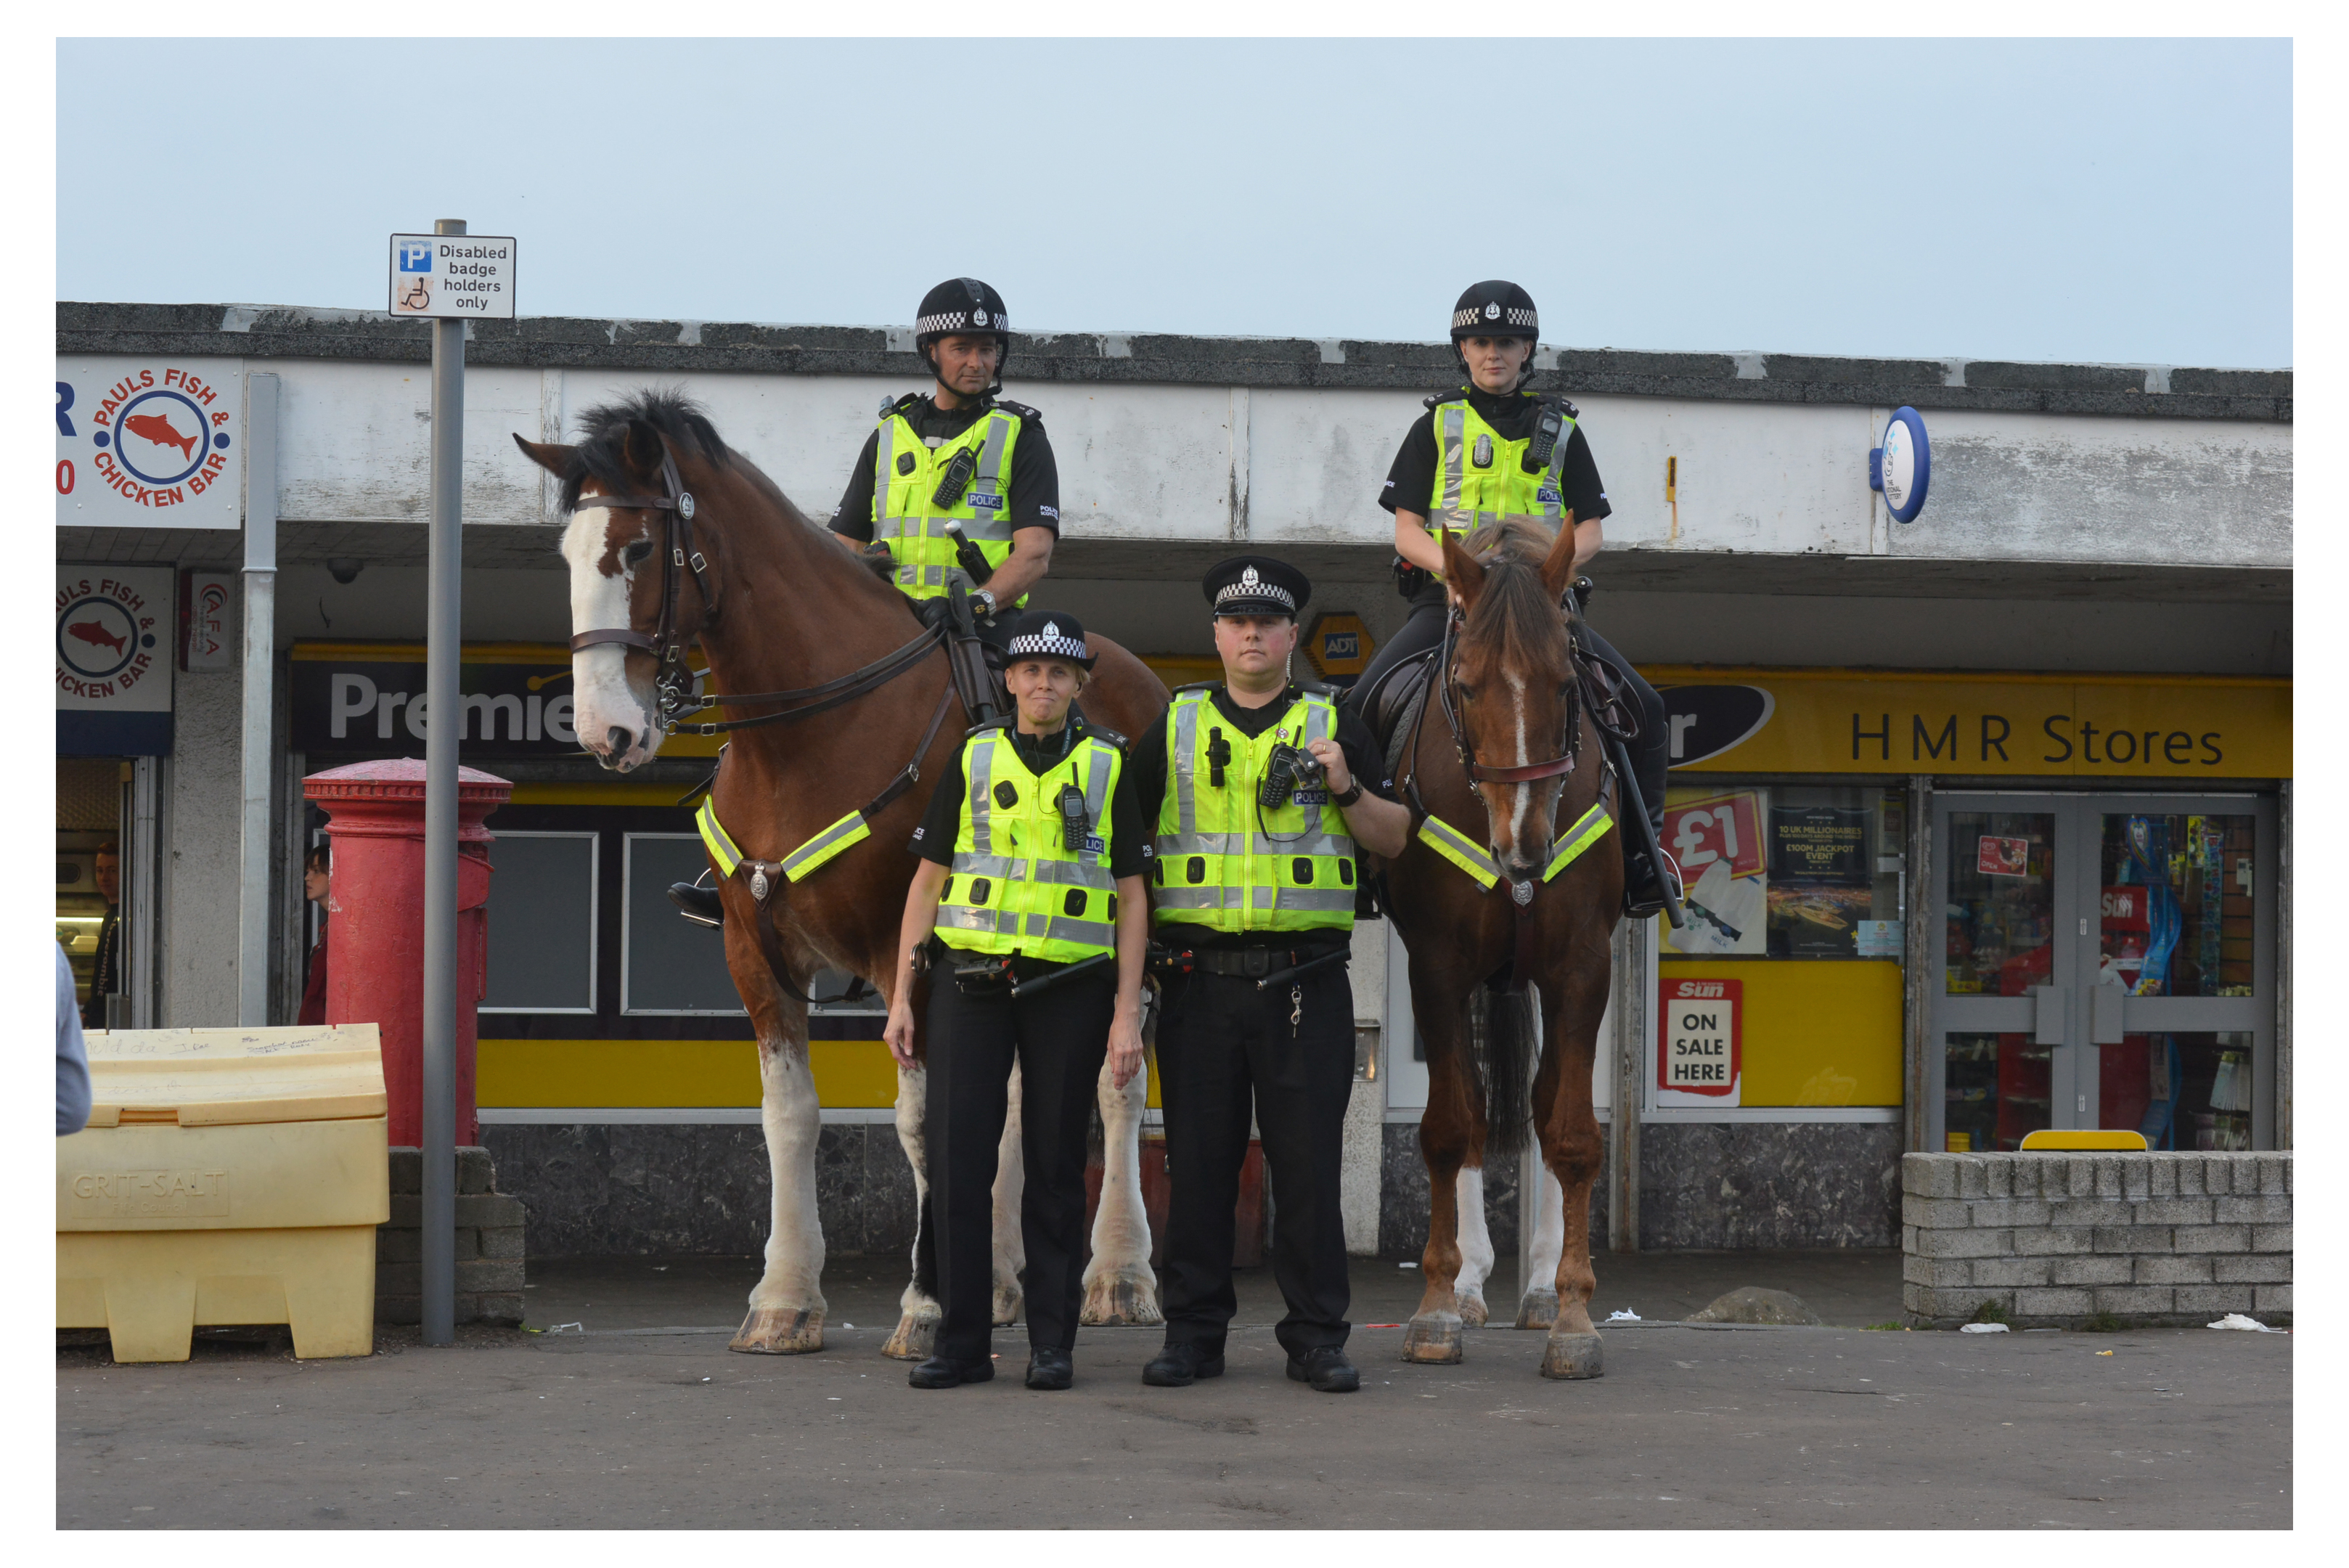 Mounted police visited Templehall in Kirkcaldy to tackle anti-social behaviour last year